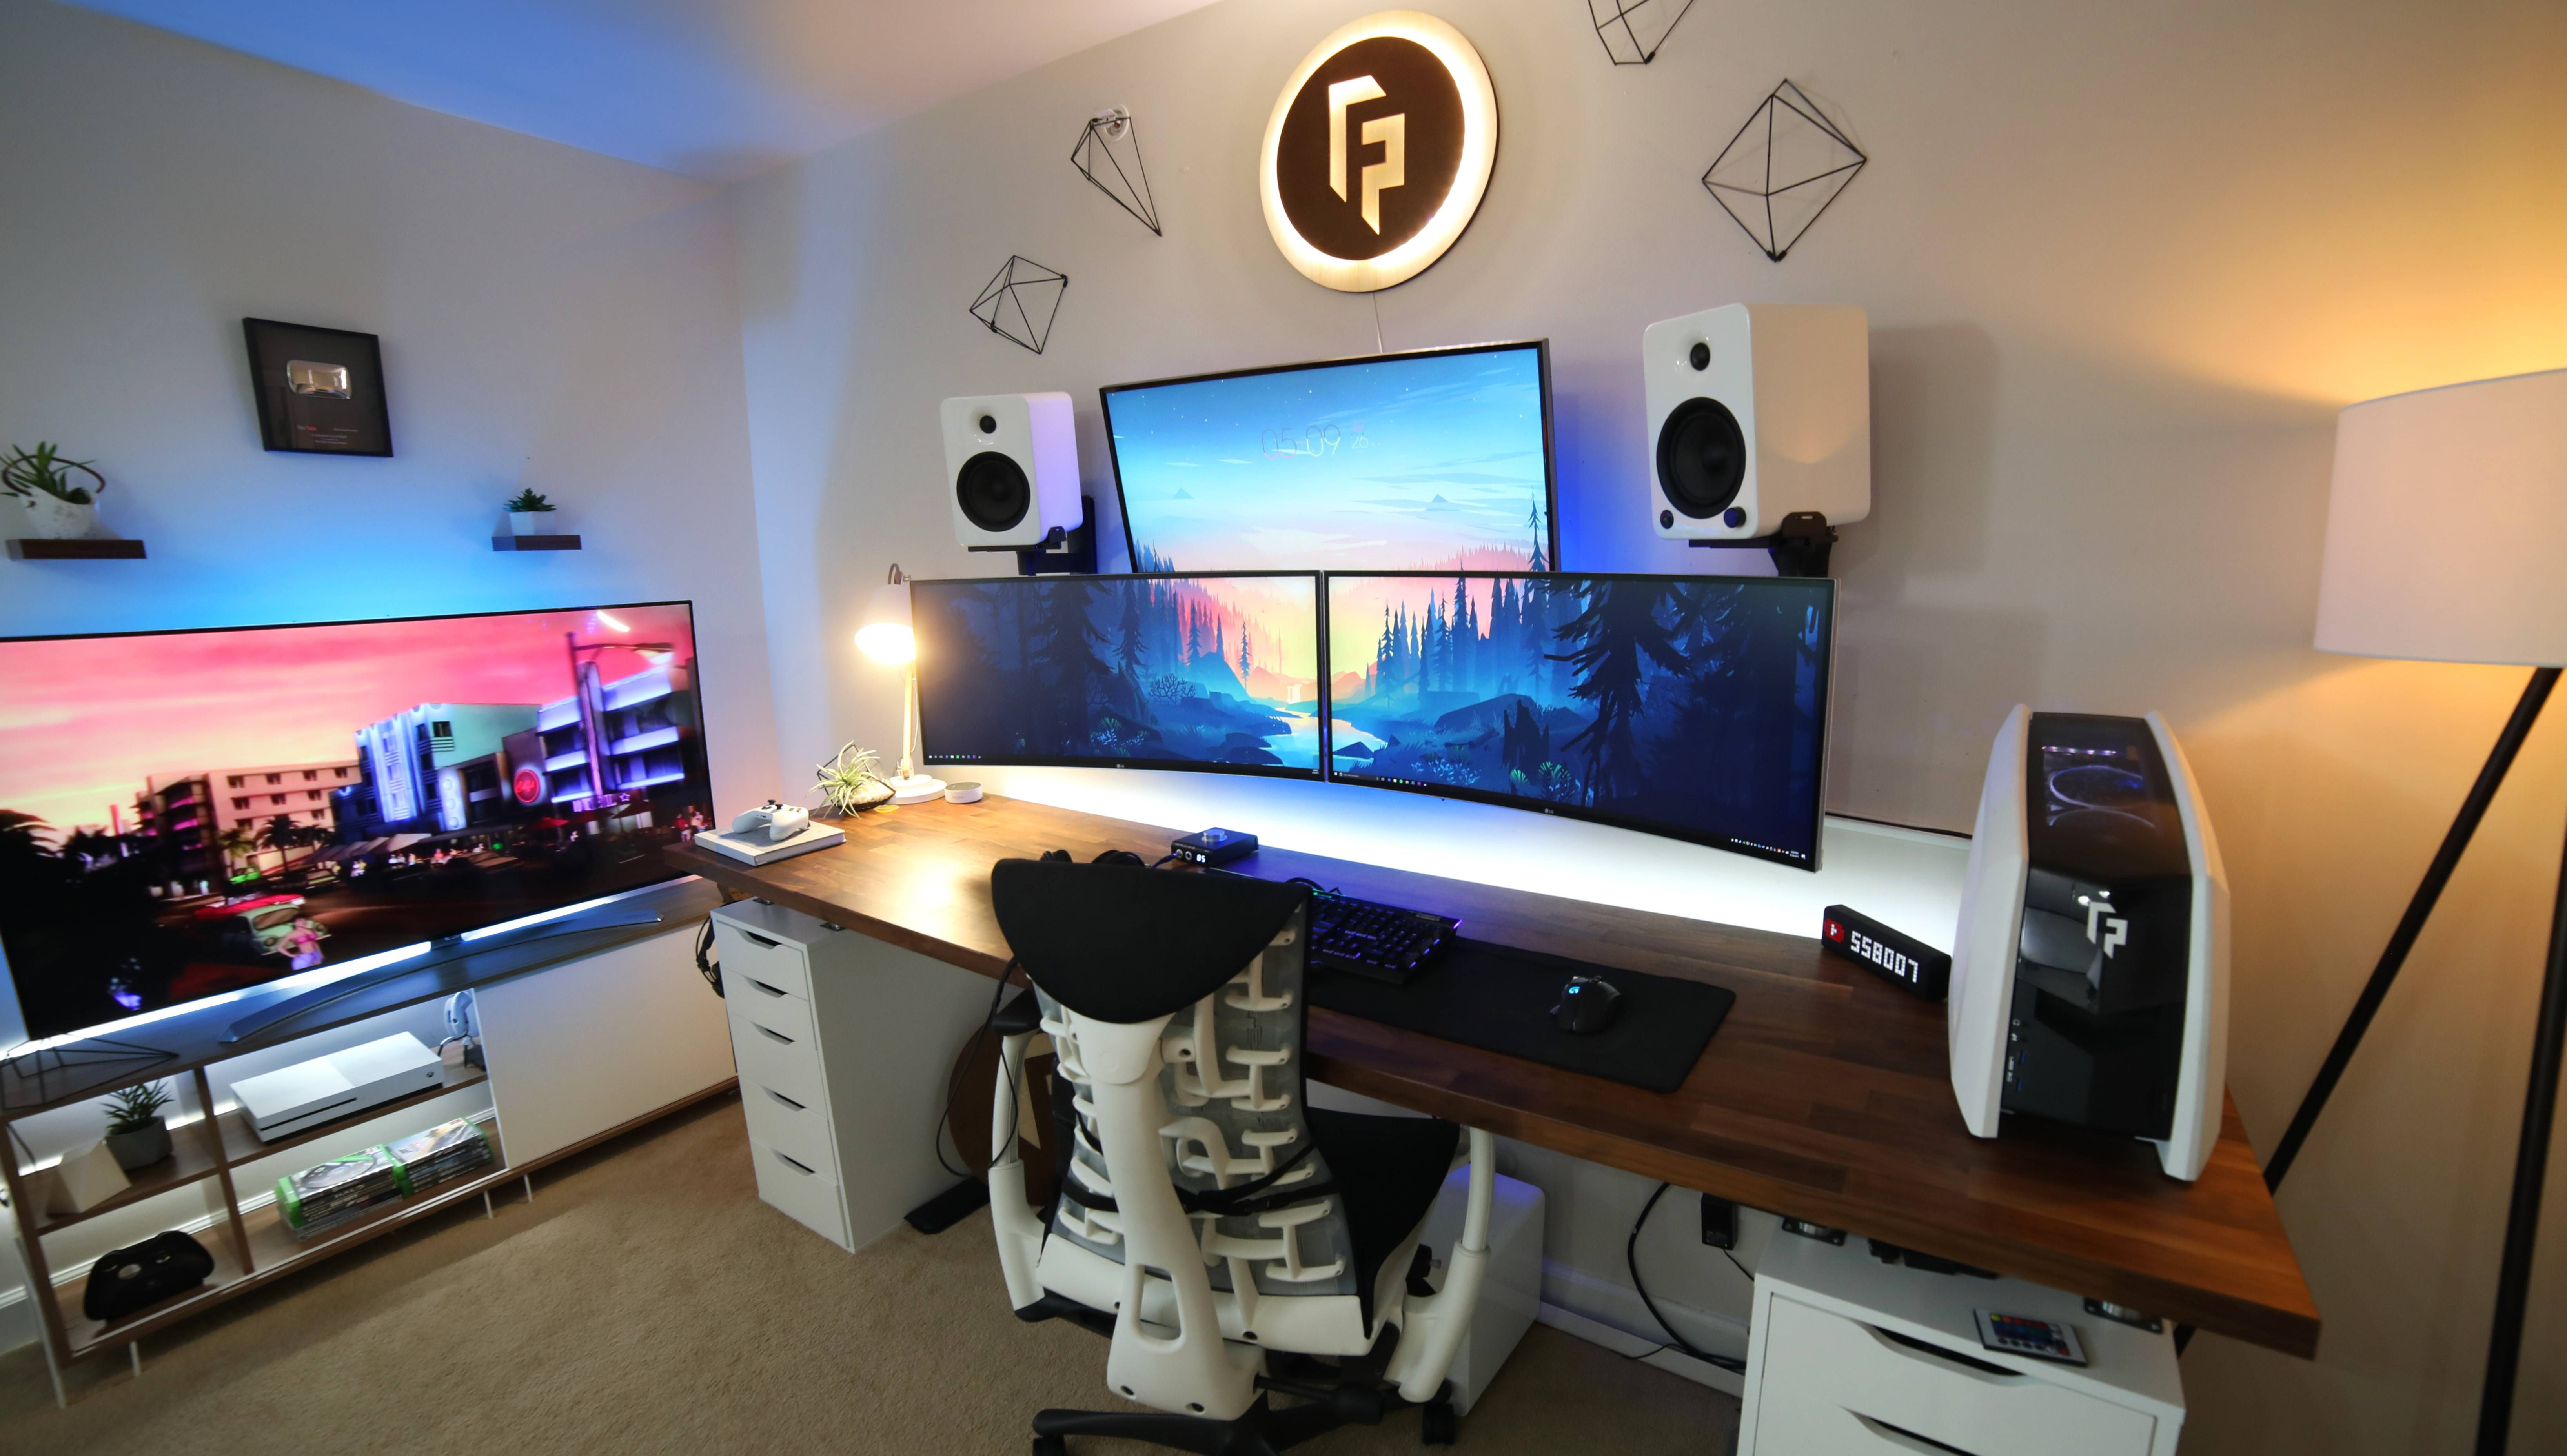 Cool Office Setups The Youtube Office Setup Technology 컴퓨터 방